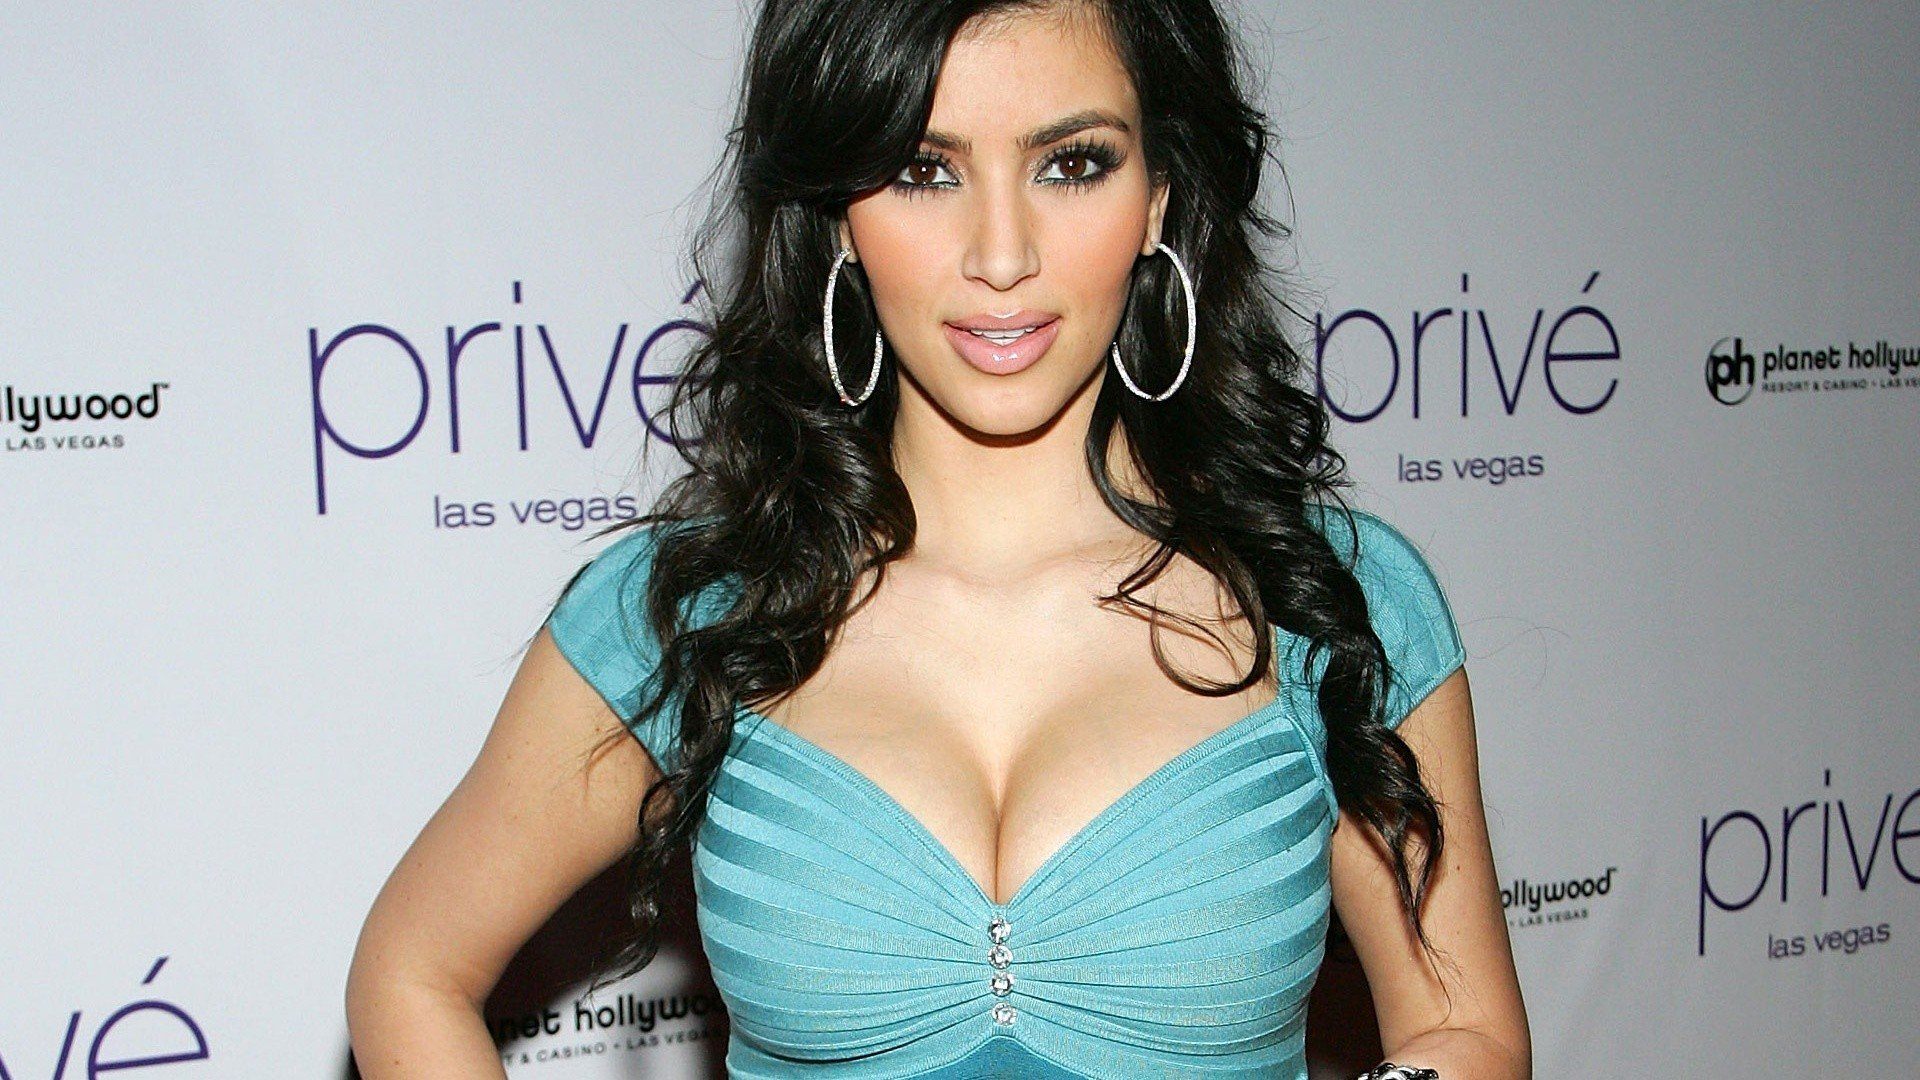 hd wallpaper kim kardashian wallpapers55com   Best Wallpapers for 1920x1080